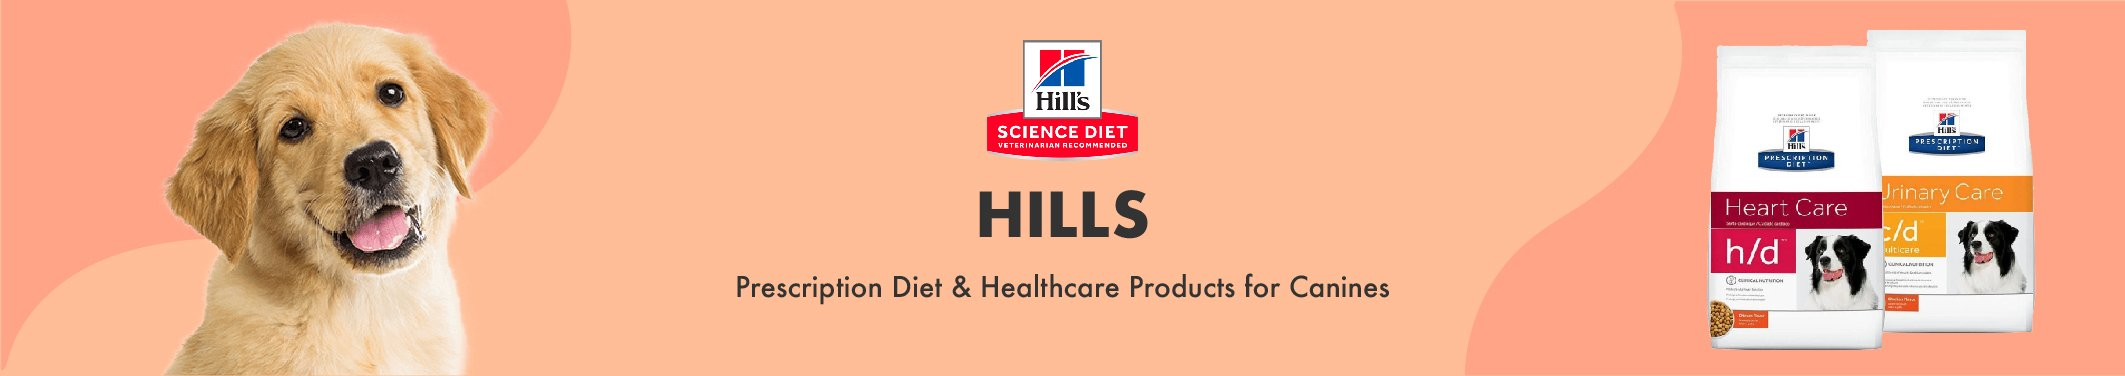 Hills Prescription Diet & Healthcare Products for Canines